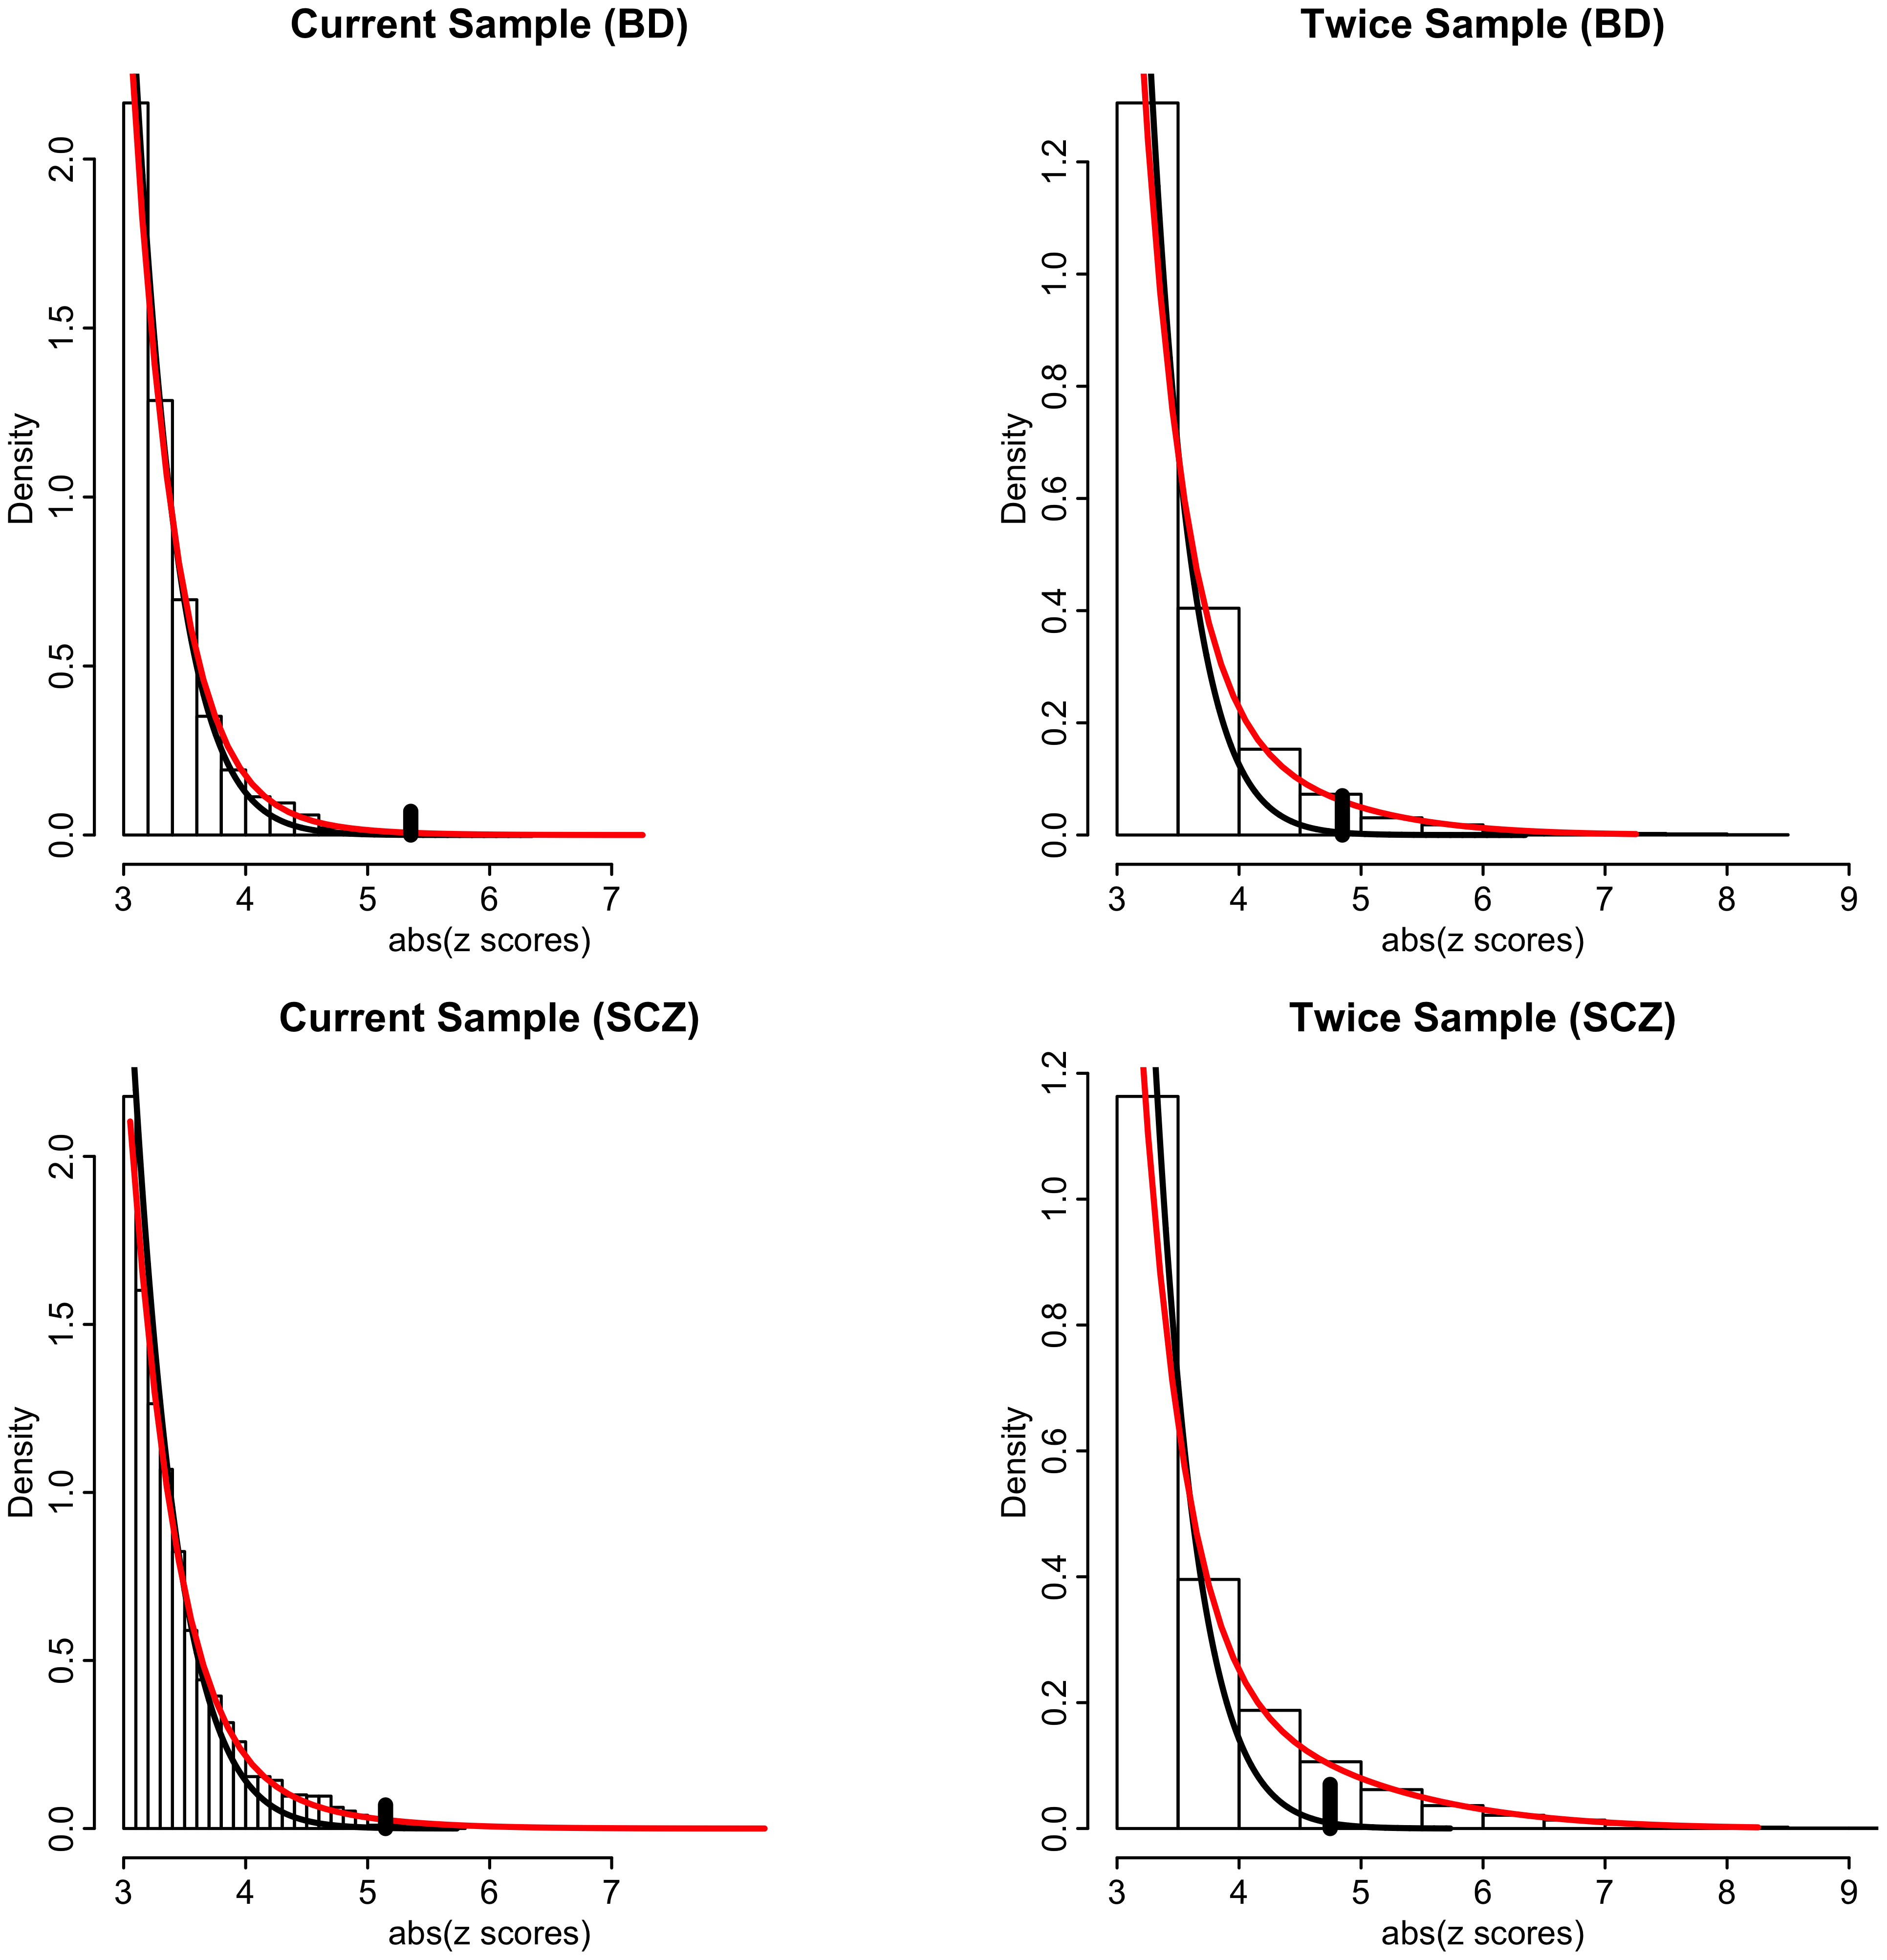 Histograms of absolute z-scores for bipolar disorder (BD, top panels) and schizophrenia (SCZ, bottom panels) for z-scores ≥3.